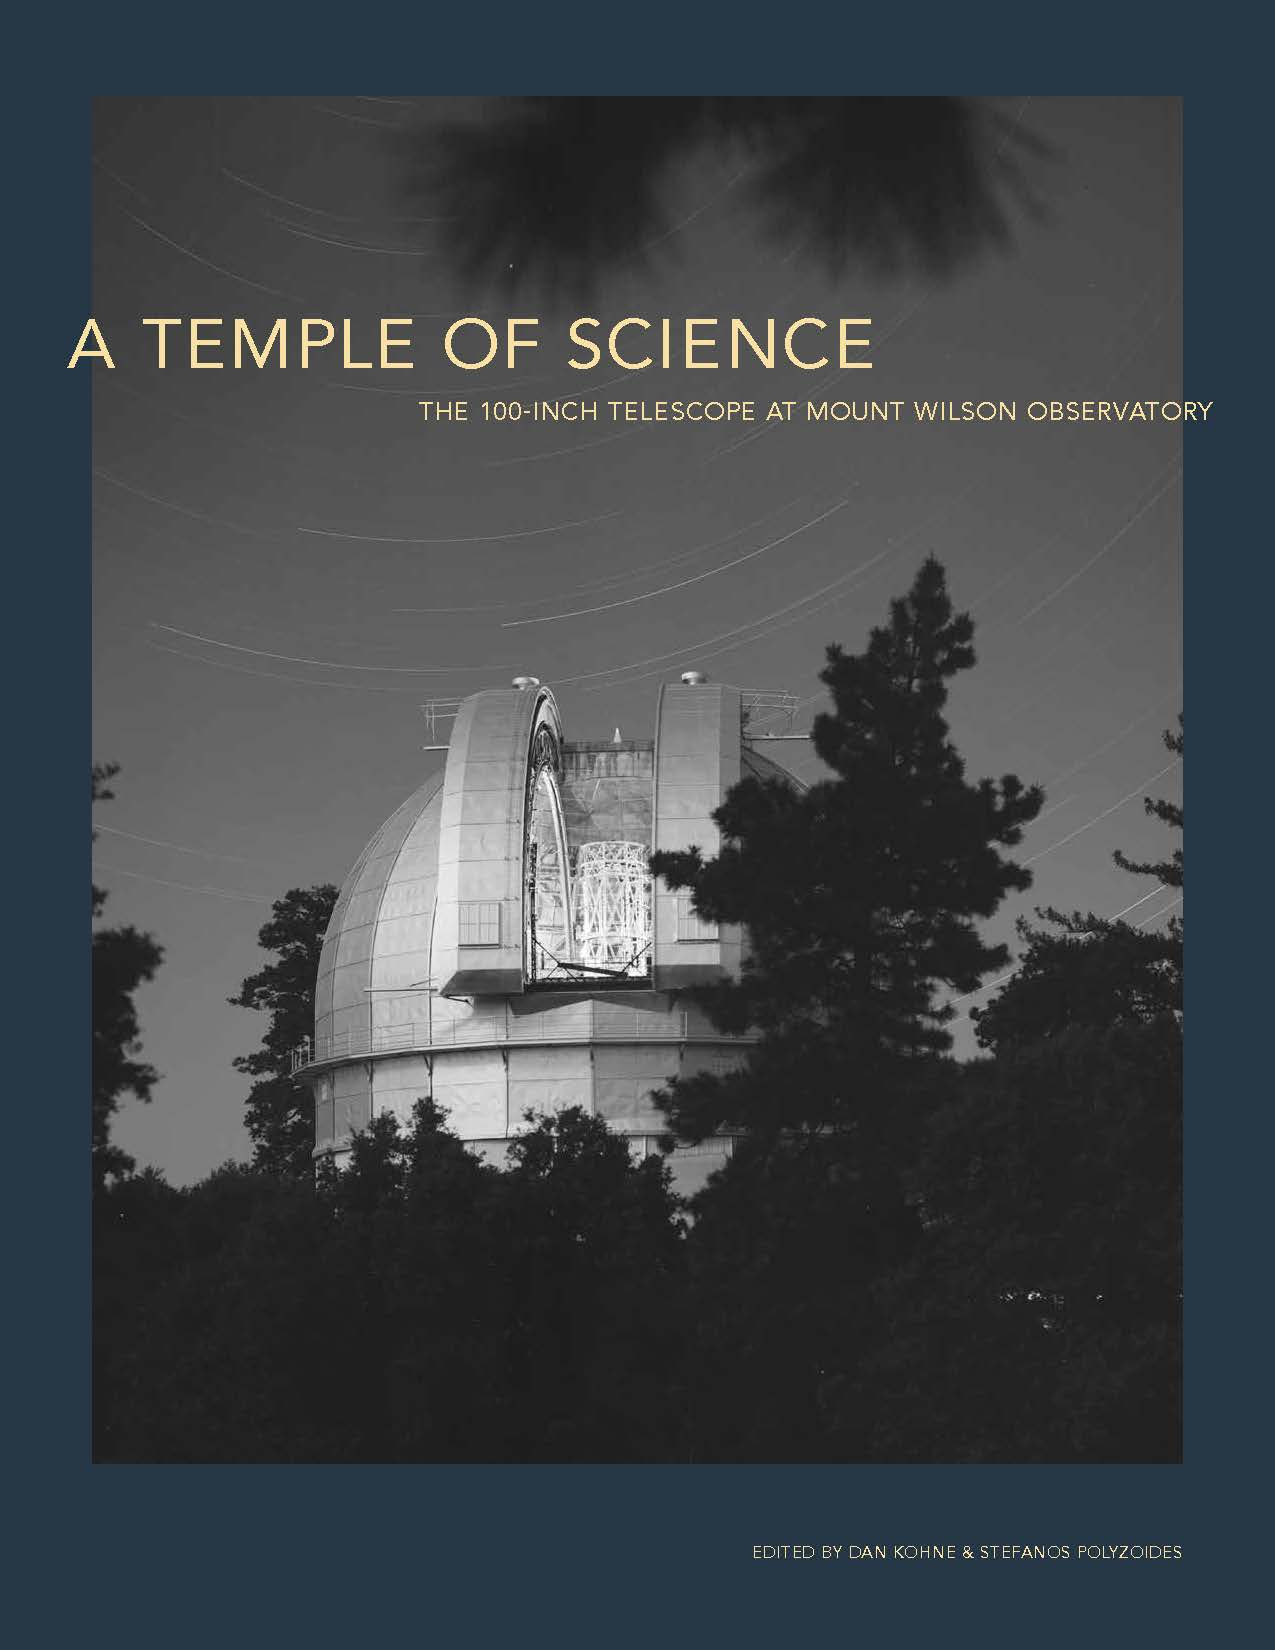 A_Temple_of_Science-spreads_Page_01.jpg